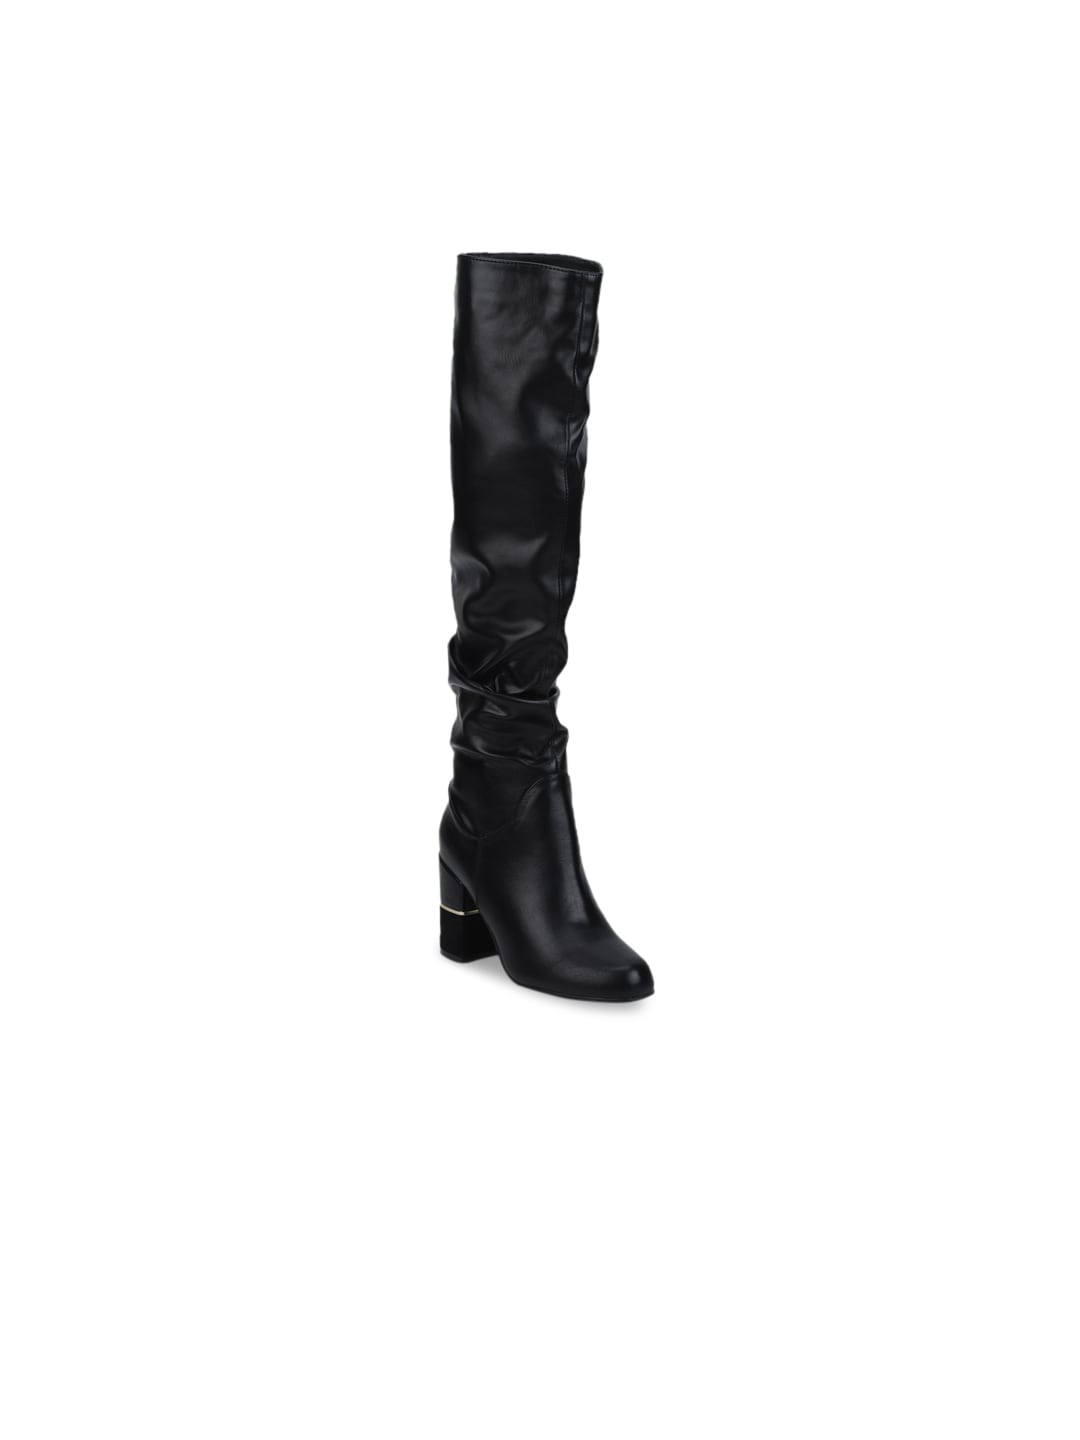 5da22387b60e Womens Boots - Buy Boots for Women Online in India